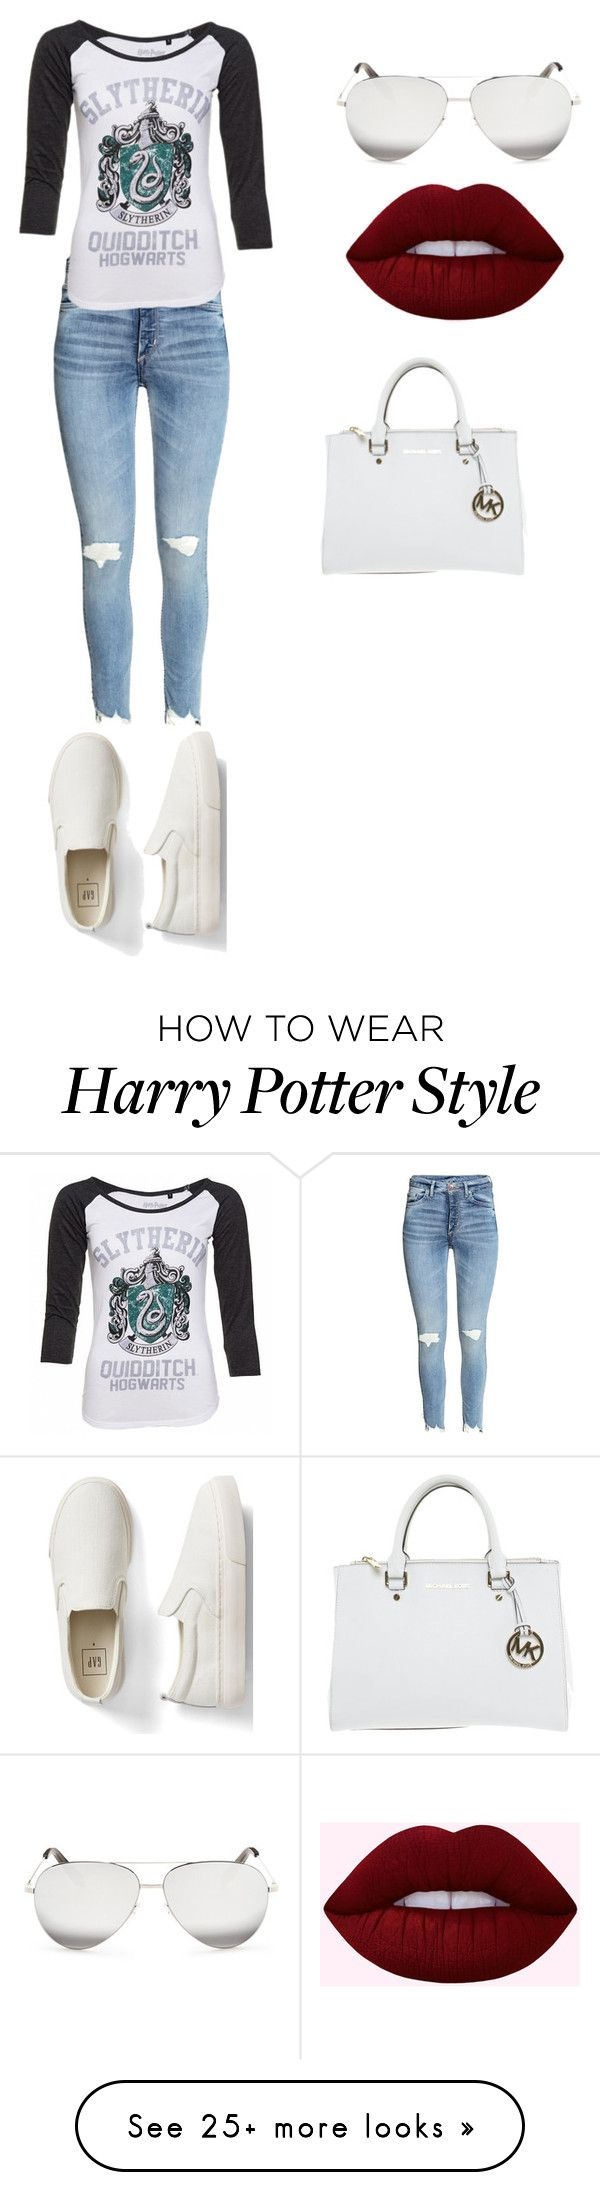 """""""#untitled"""" by miss-ooko on Polyvore featuring Gap, Victoria Beckham and Michael Kors"""